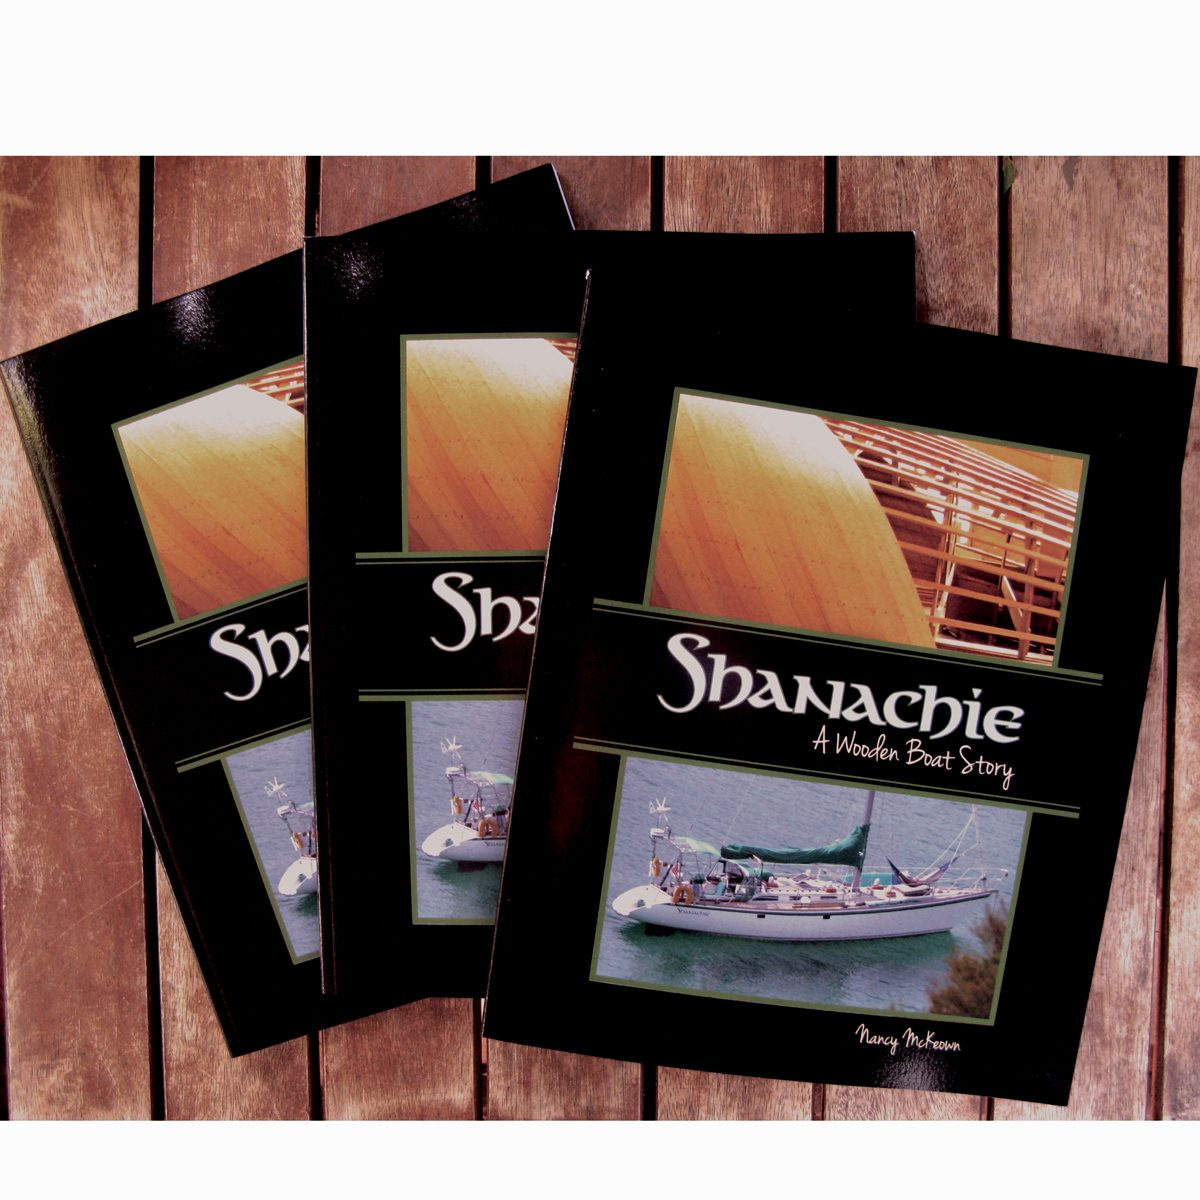 Shanachie: A Wooden Boat Story